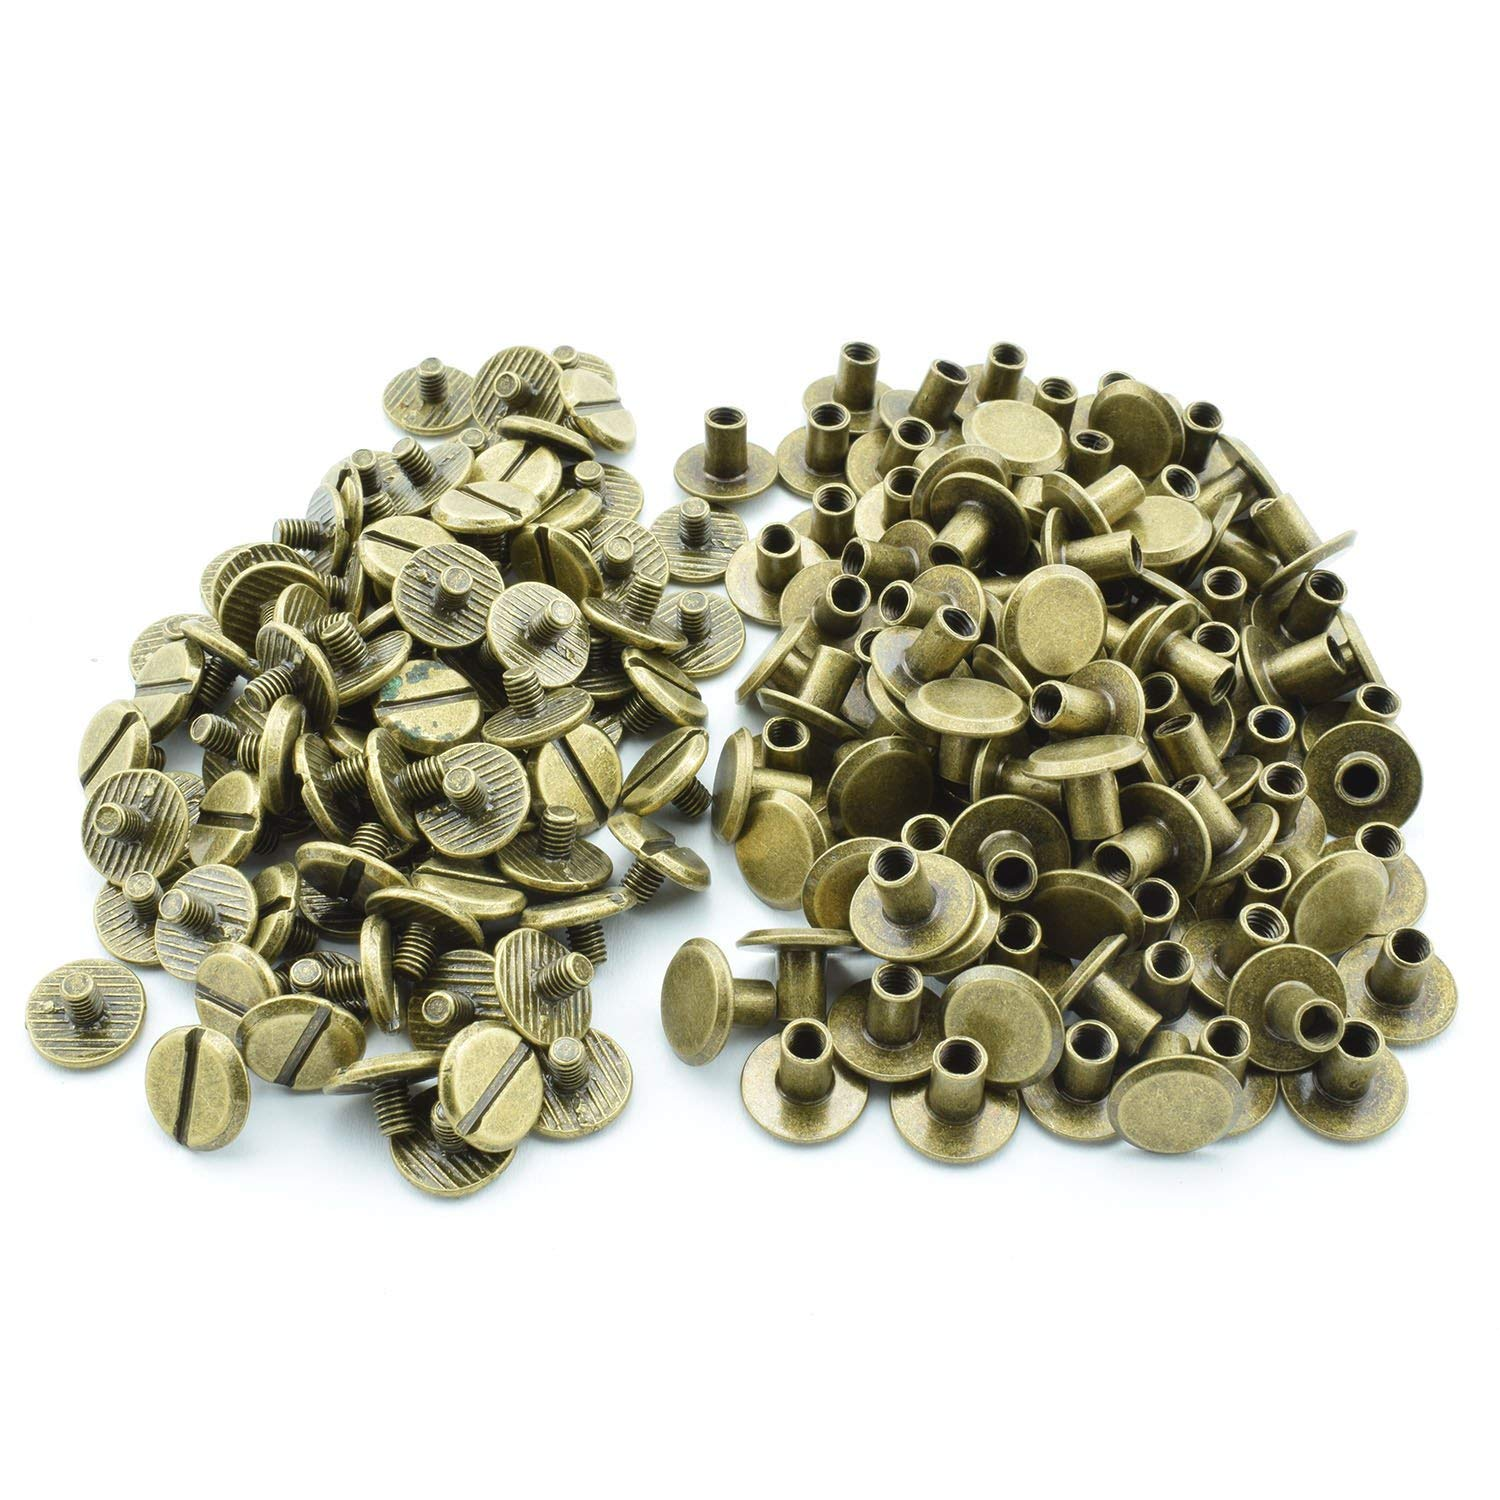 100 Pack M4x6 Bronze Chicago Screws Metal Accessories Carbon Steel Nail Rivet Chicago Button For DIY Leather Decoration Document Book Album Bookbinding Round Flat Head Stud Screw